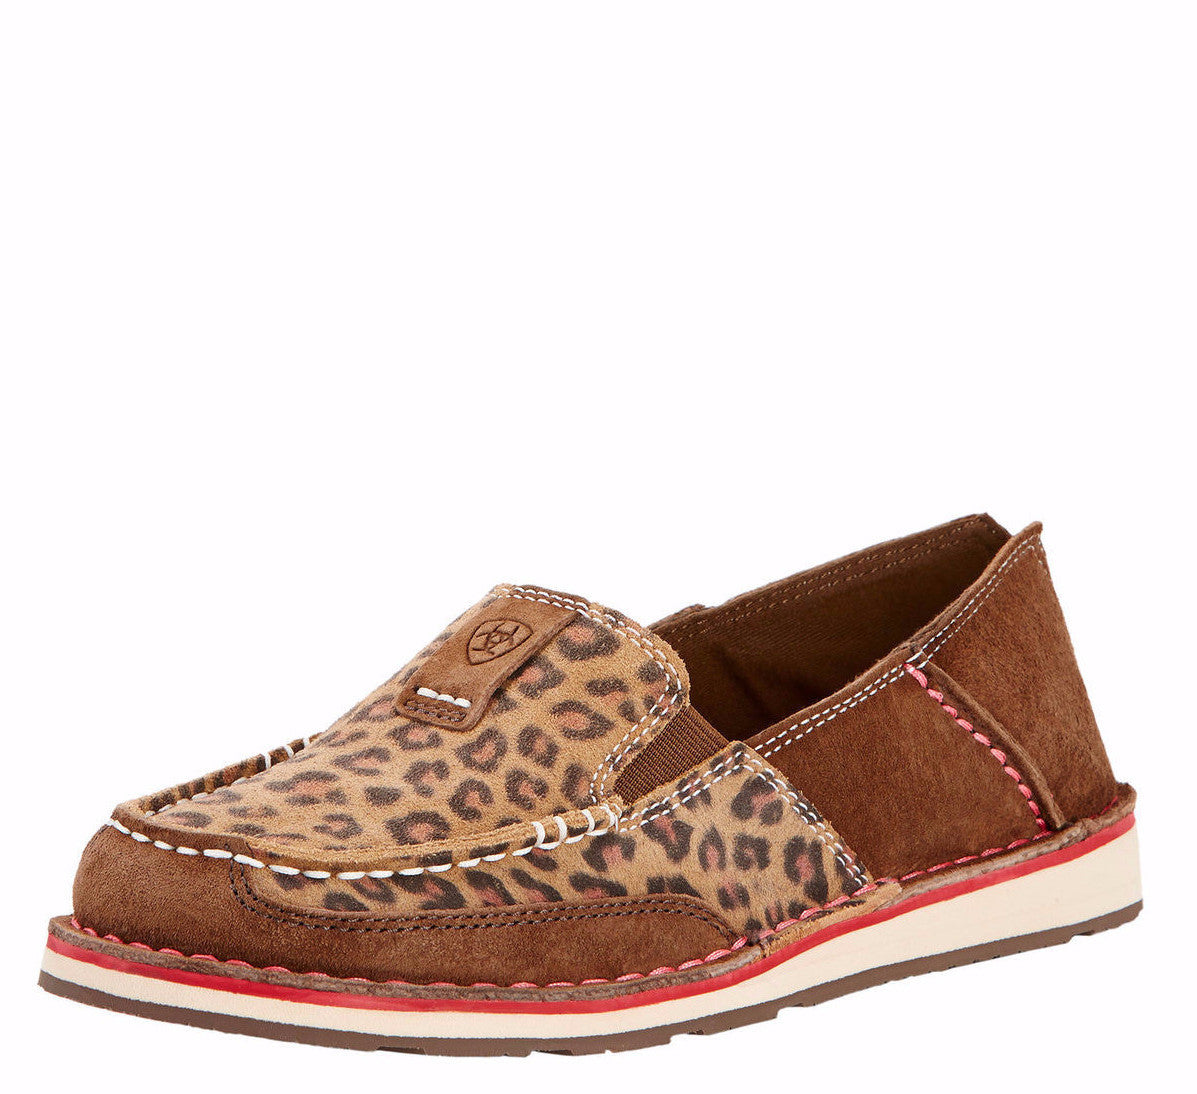 Ariat Women's Cheetah Cruiser Moc